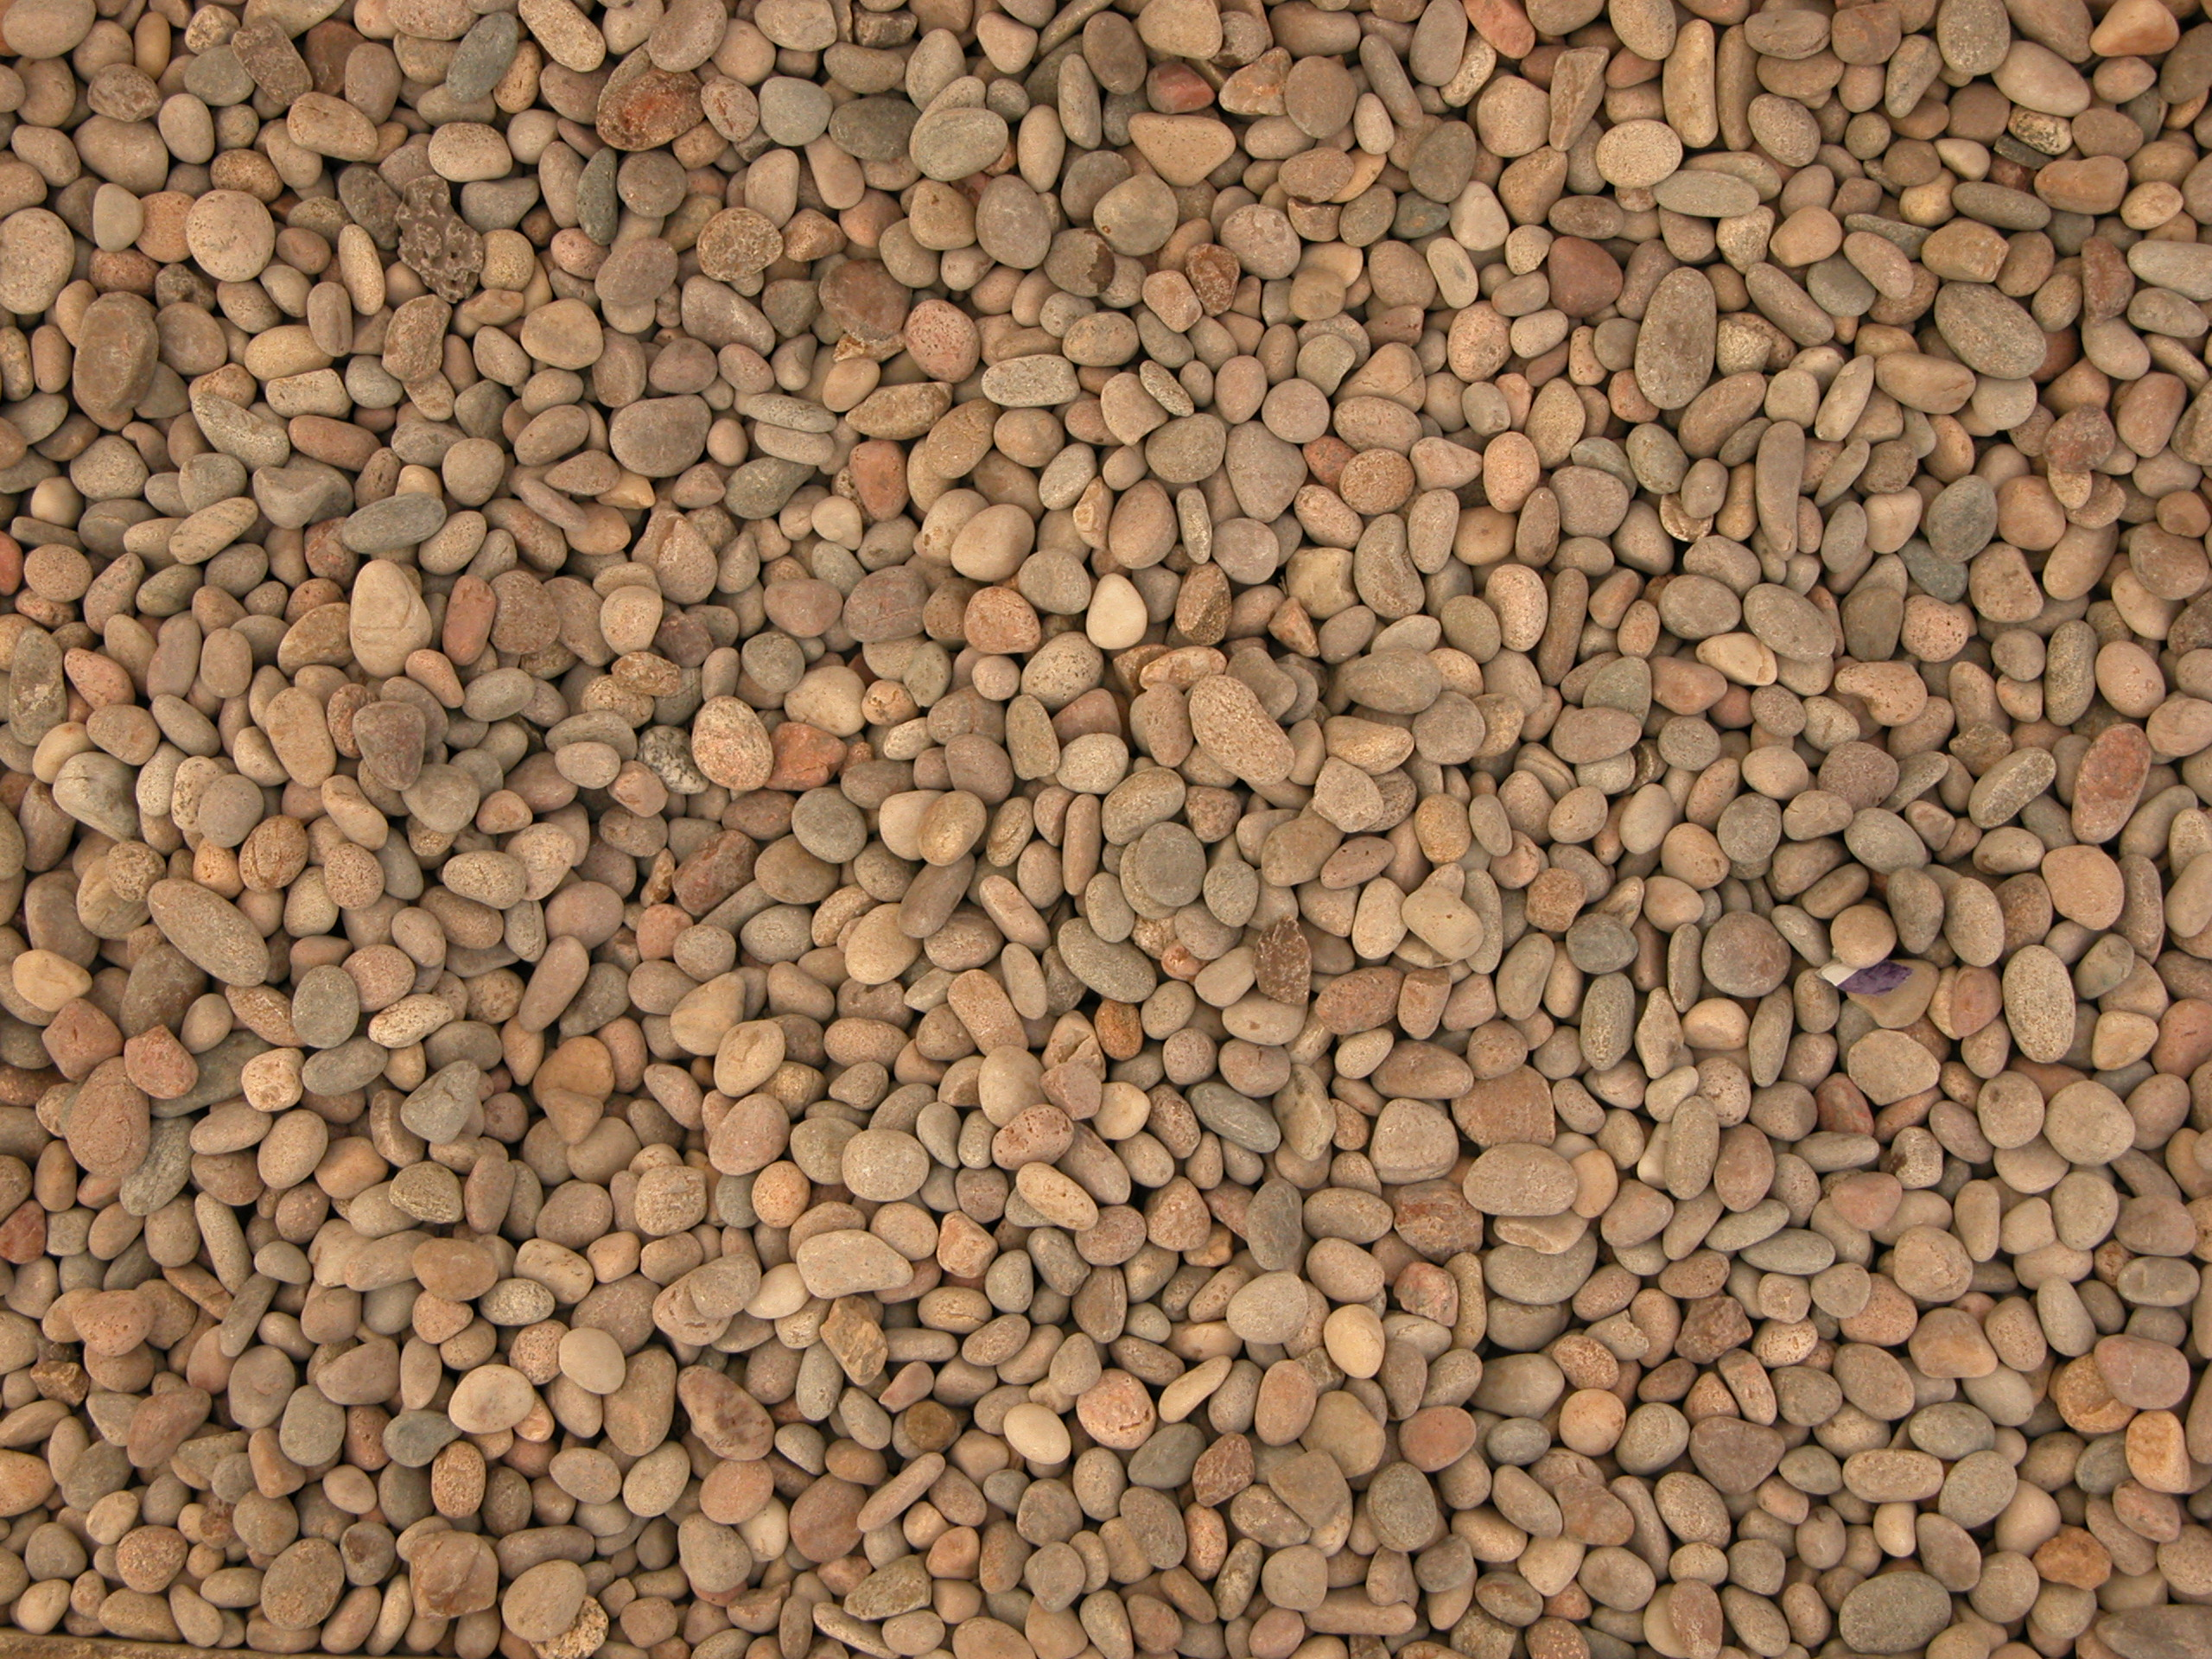 small orange pebble, download photo, background, red stones texture